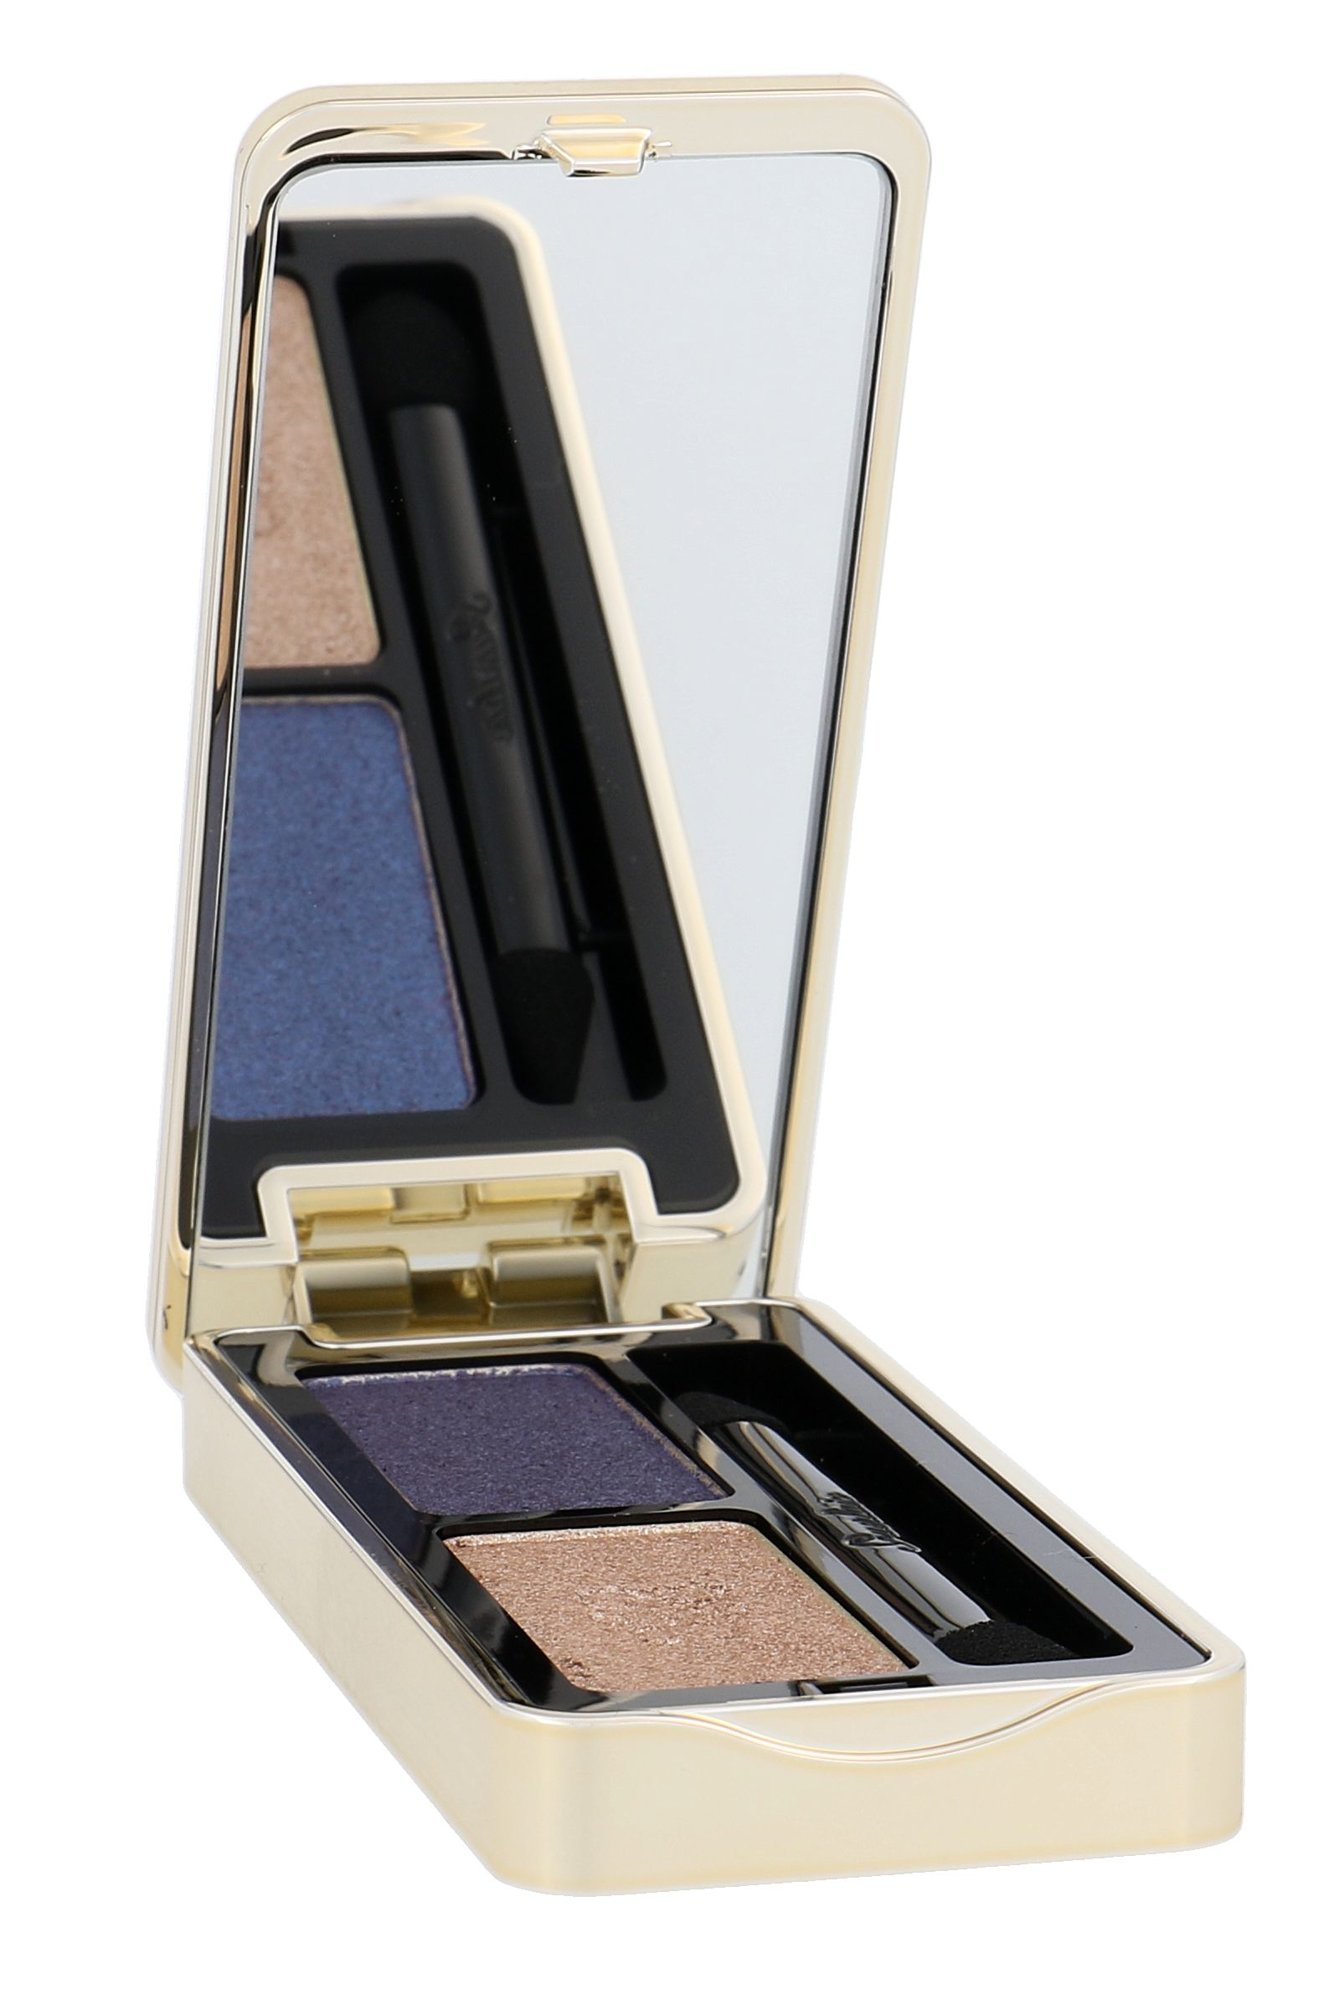 Guerlain Shalimar Cosmetic 3ml Gold And Sapphire